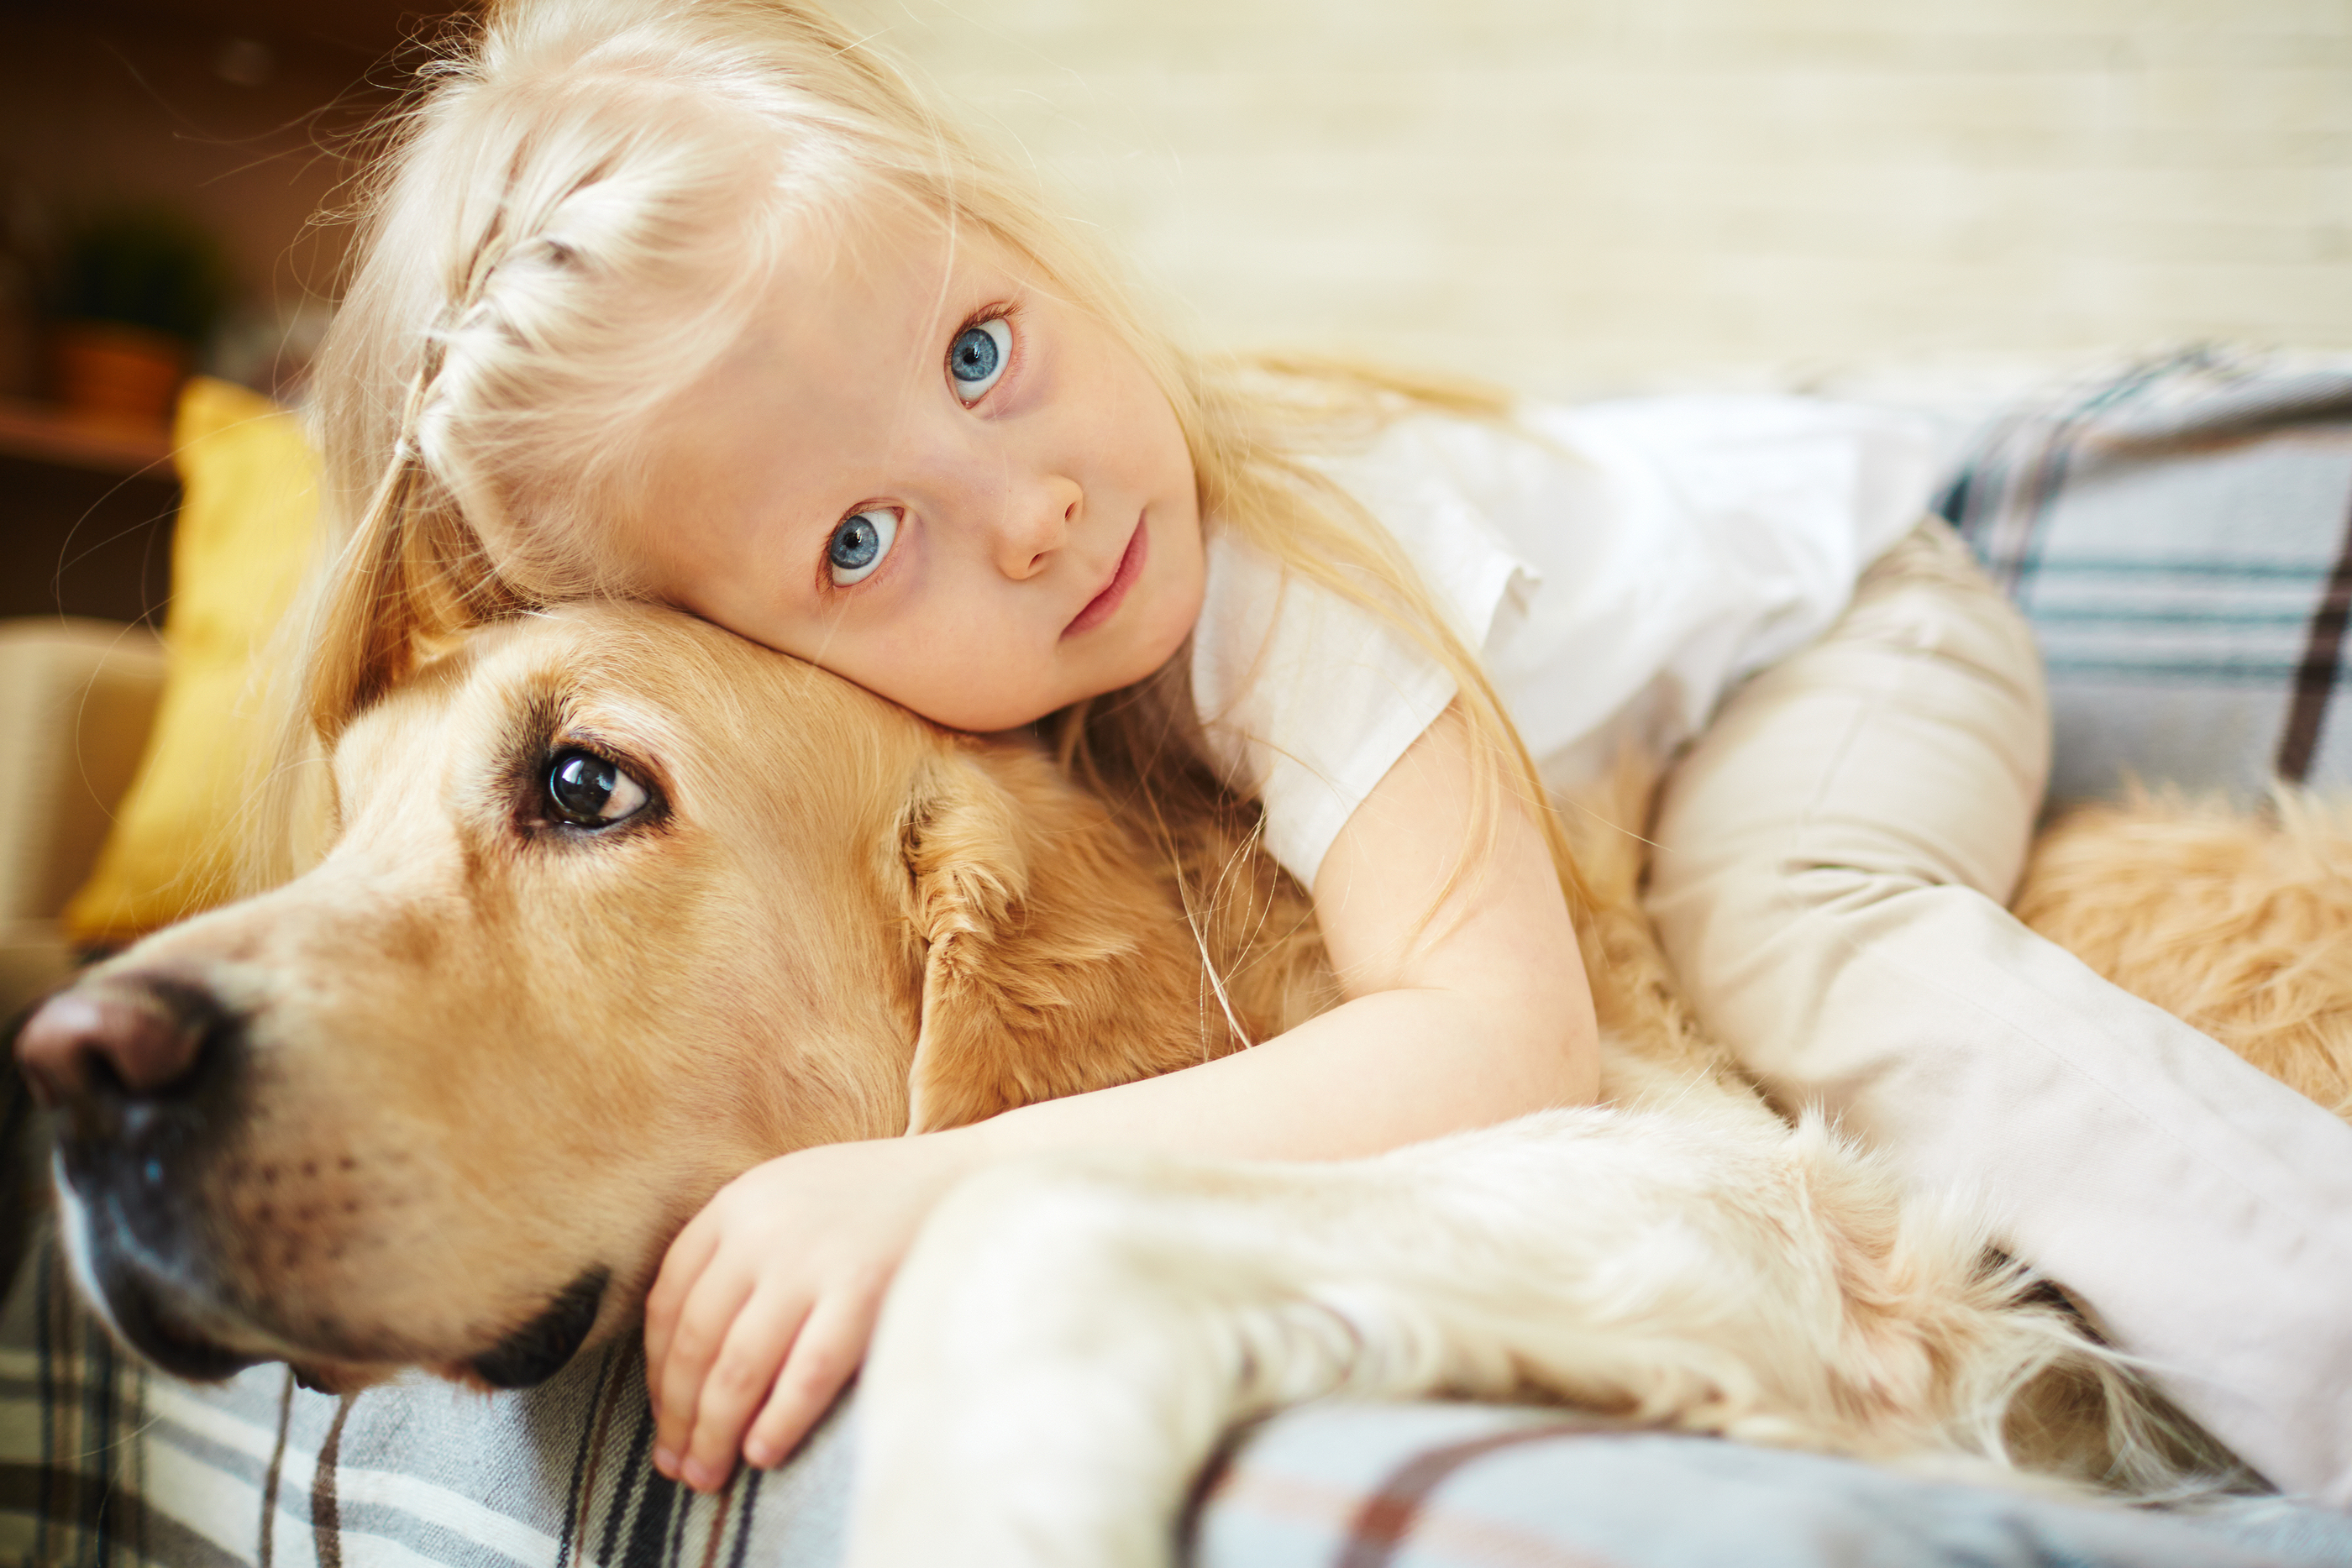 bigstock-Cute-child-lying-on-fluffy-pet-87252575